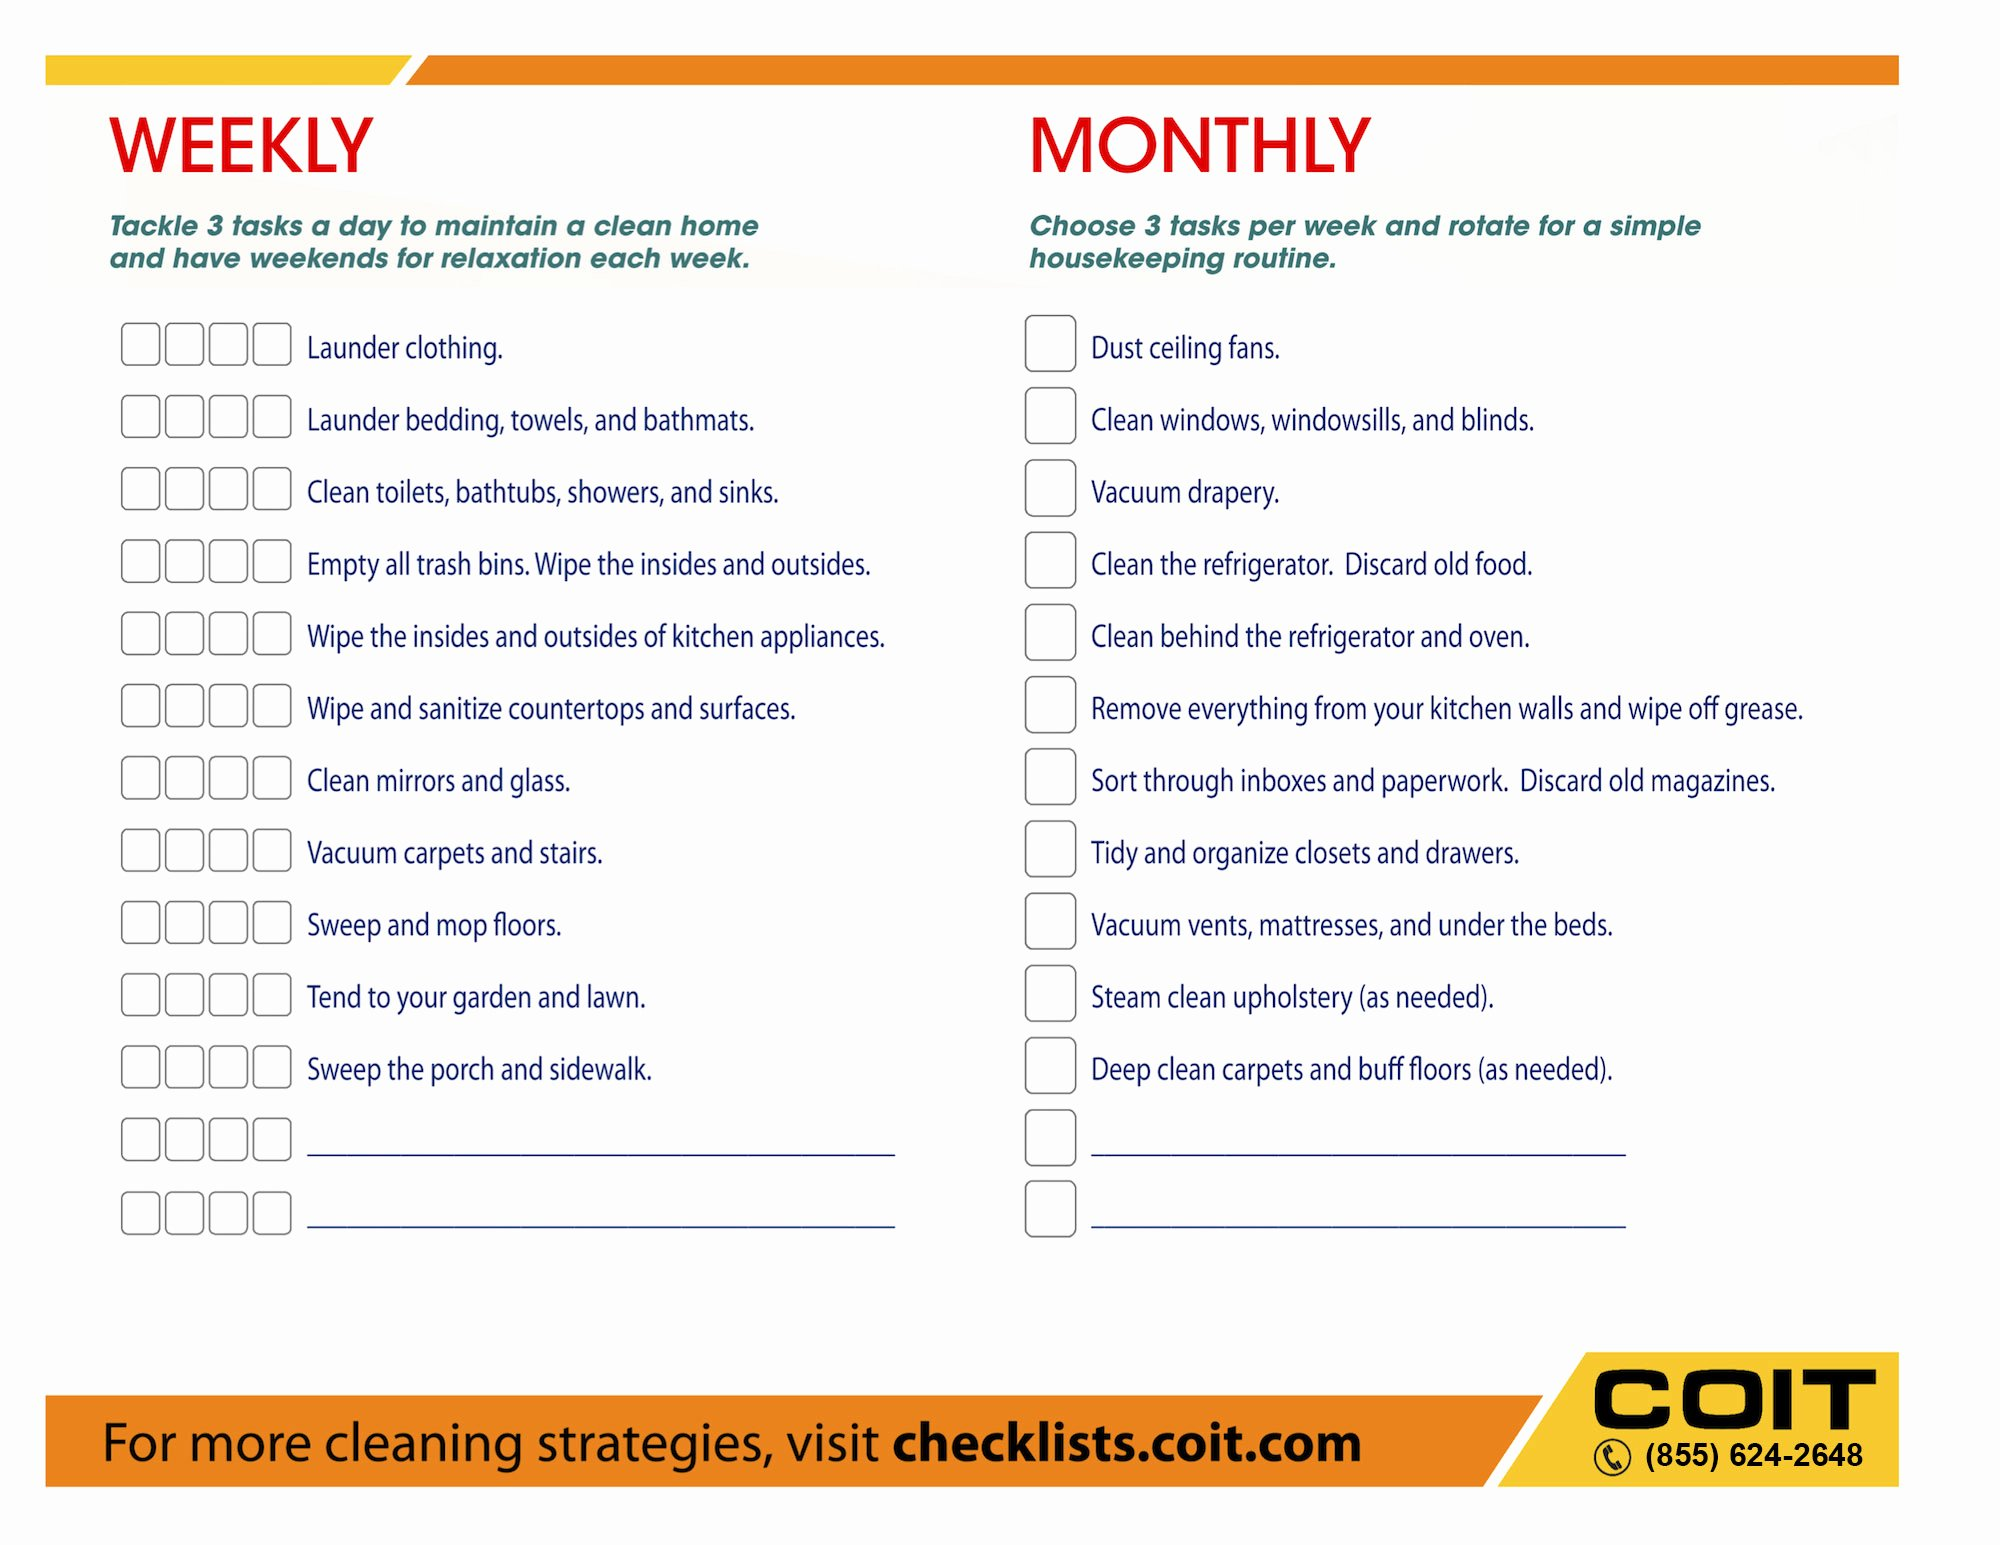 Monthly Cleaning Schedule Template Luxury Weekly and Monthly House Cleaning Checklist